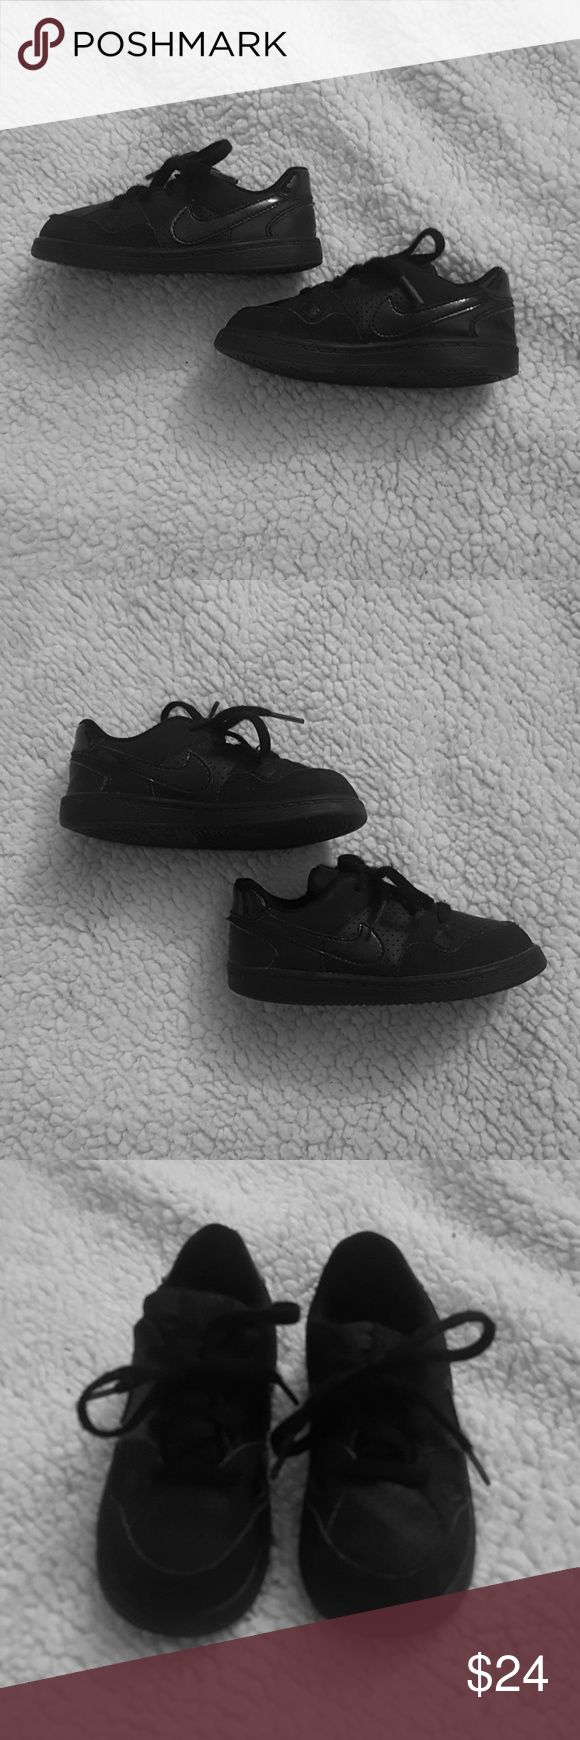 Toddler Size 8c Black Nike Air Force One Sneakers Size 8c   Pre-owned. Bottom of right sole is slightly bent. Seen in picture.   Still in good condition Nike Shoes Sneakers